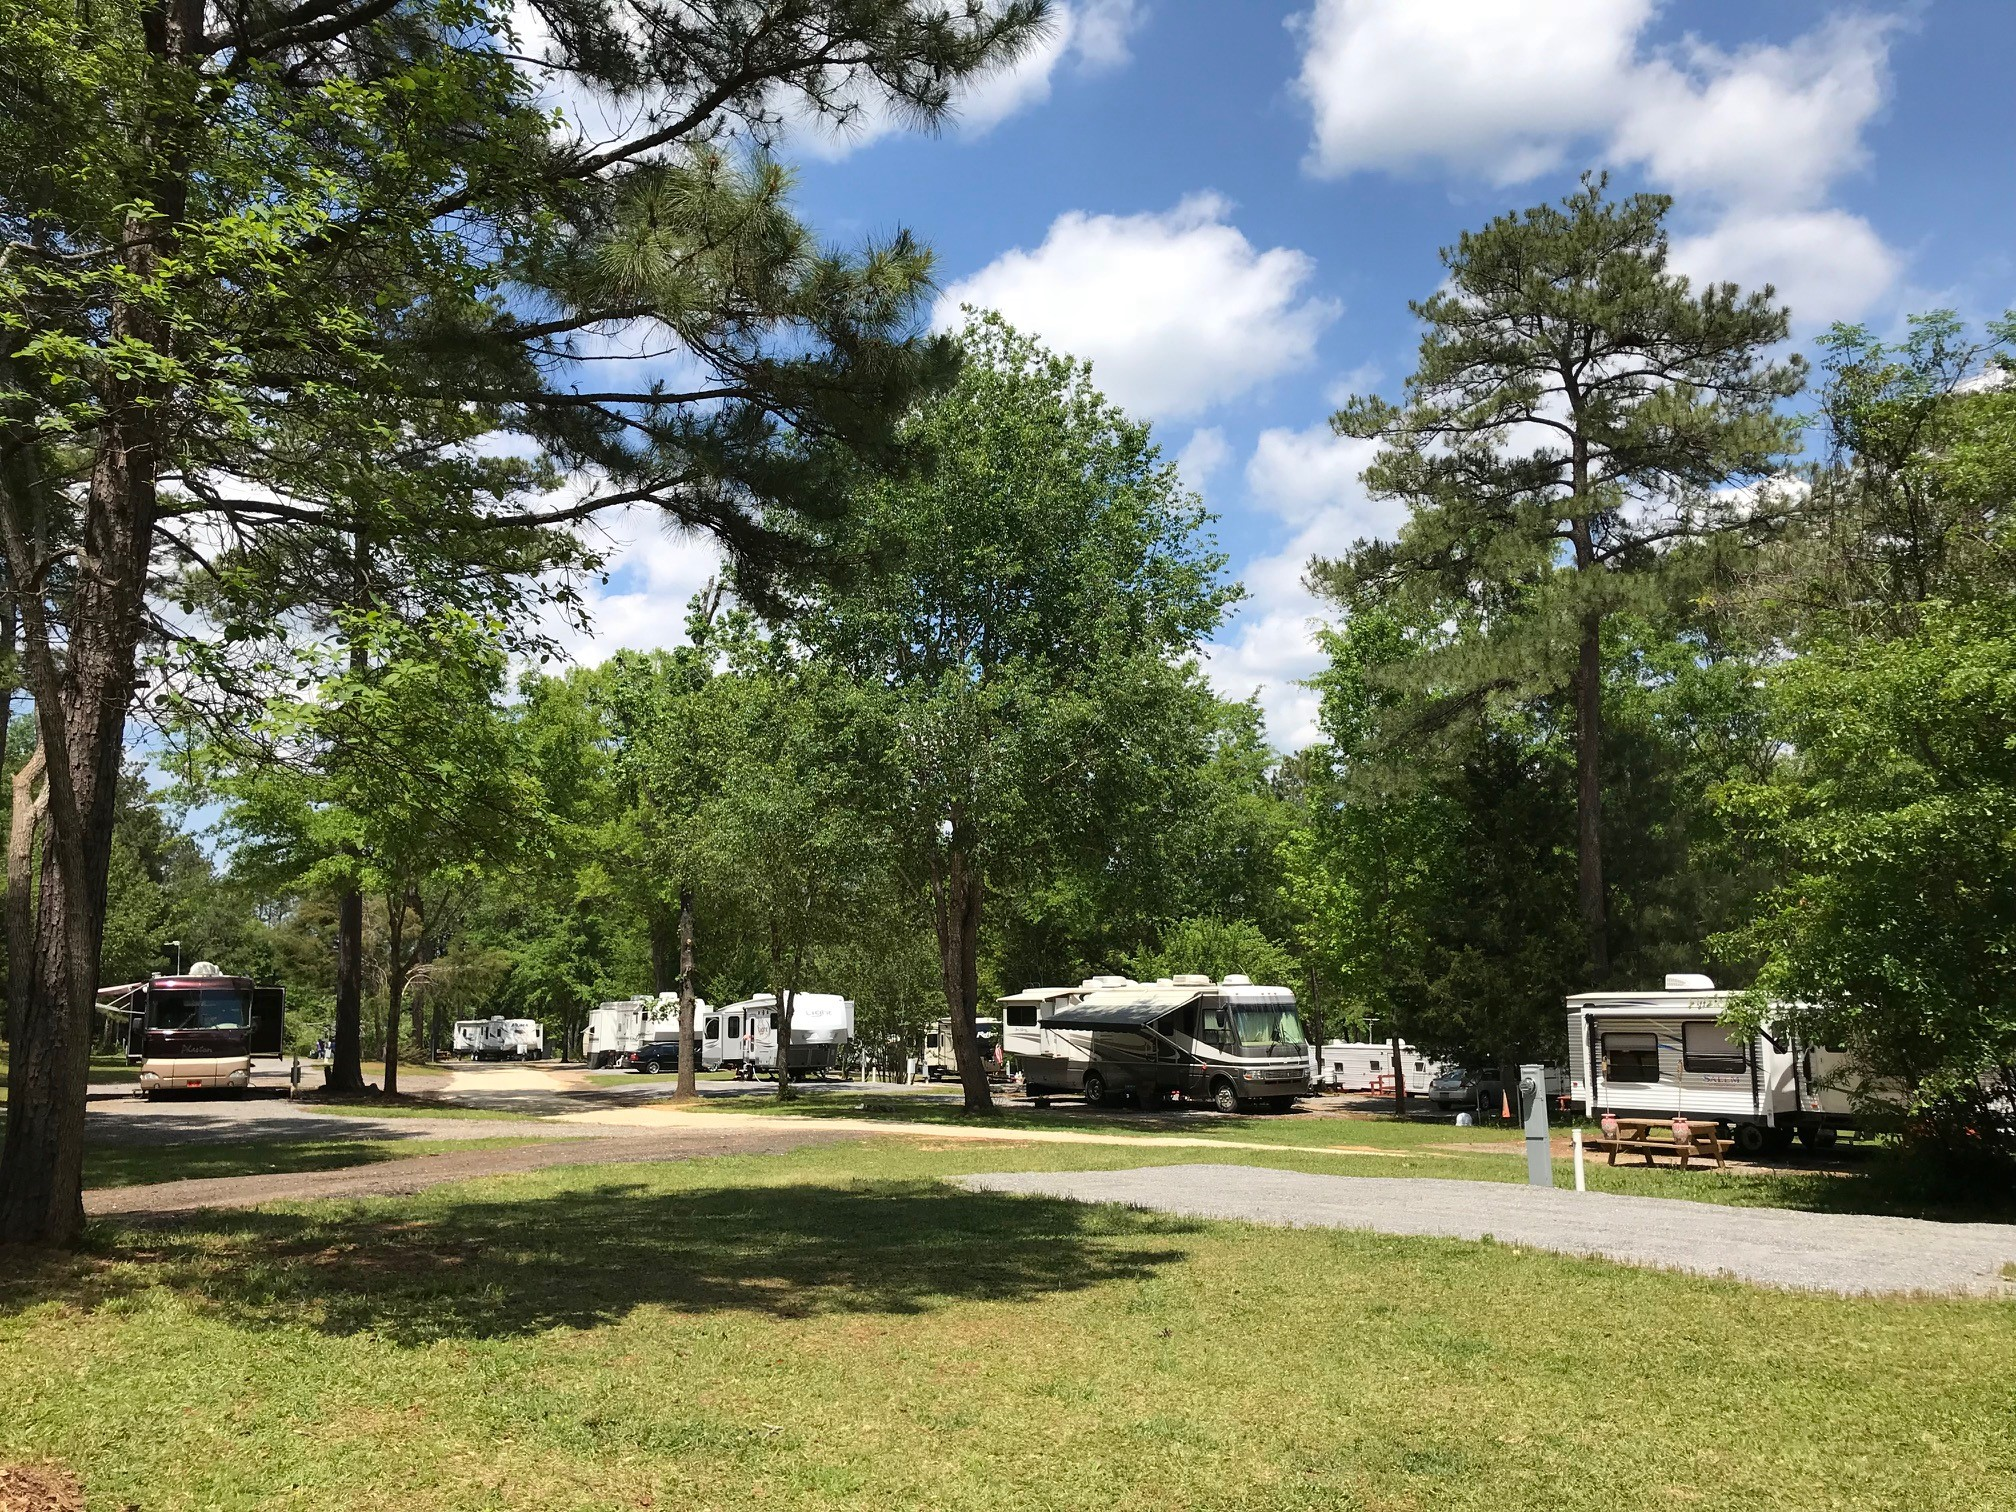 RV Sites in Park-Like Setting - We have beautiful trees and shade!